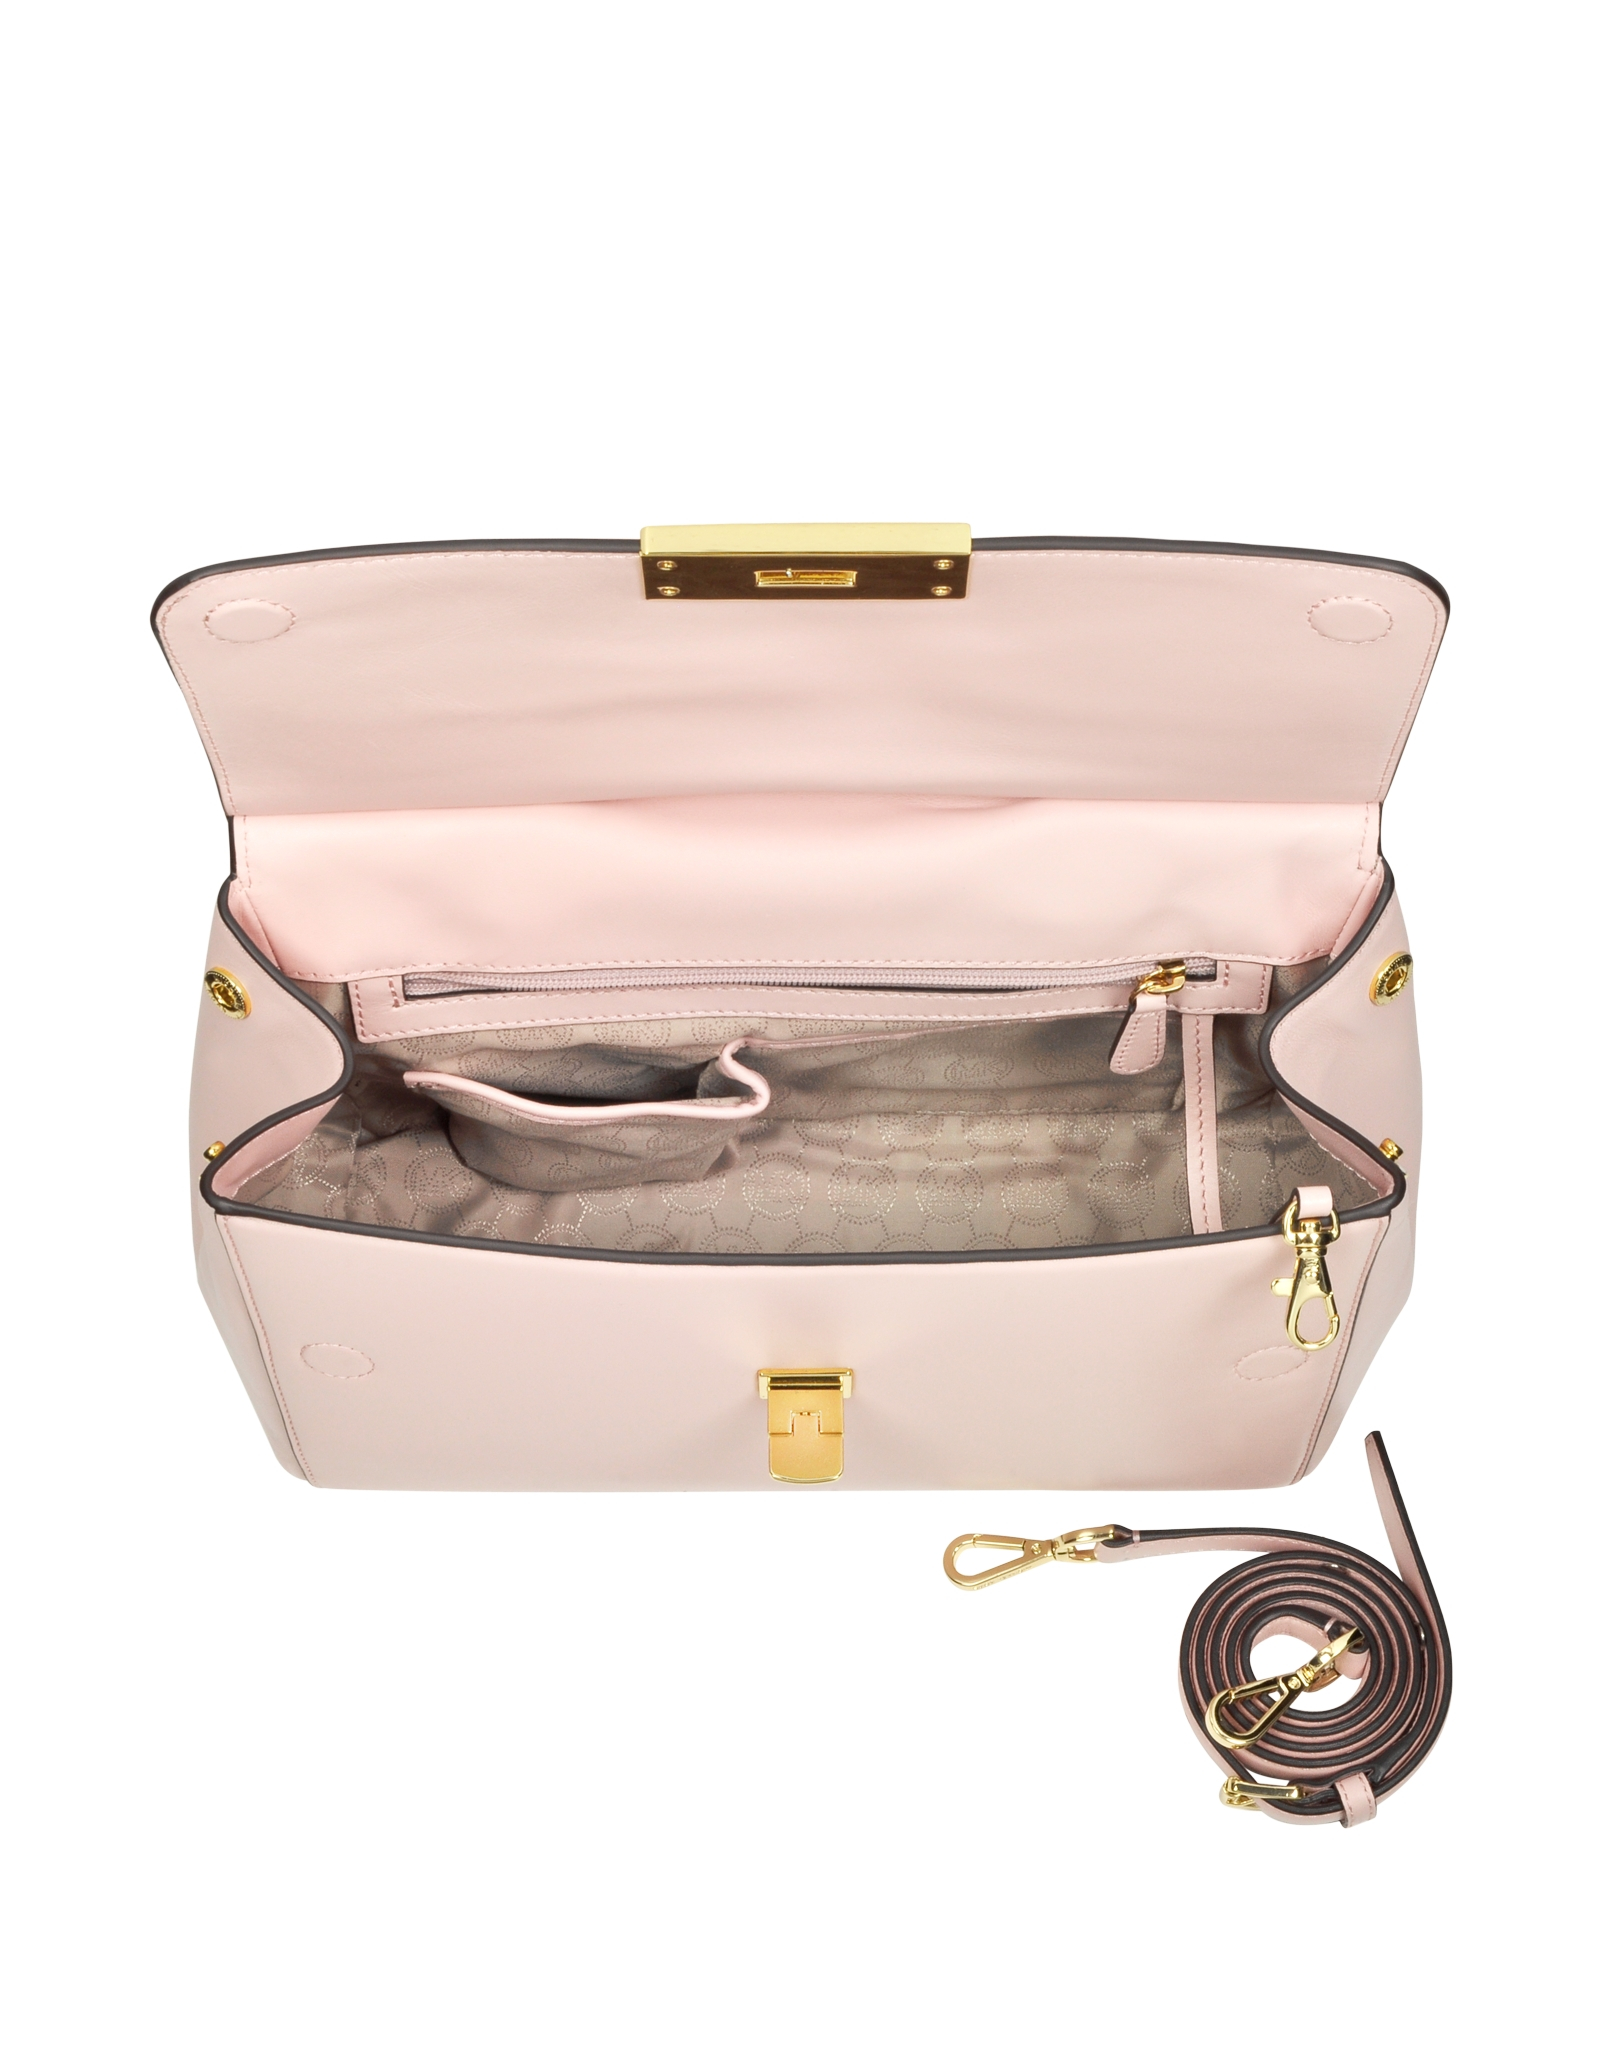 2fe777295e8c Michael Kors Marlow Large Leather Satchel Bag in Pink - Lyst